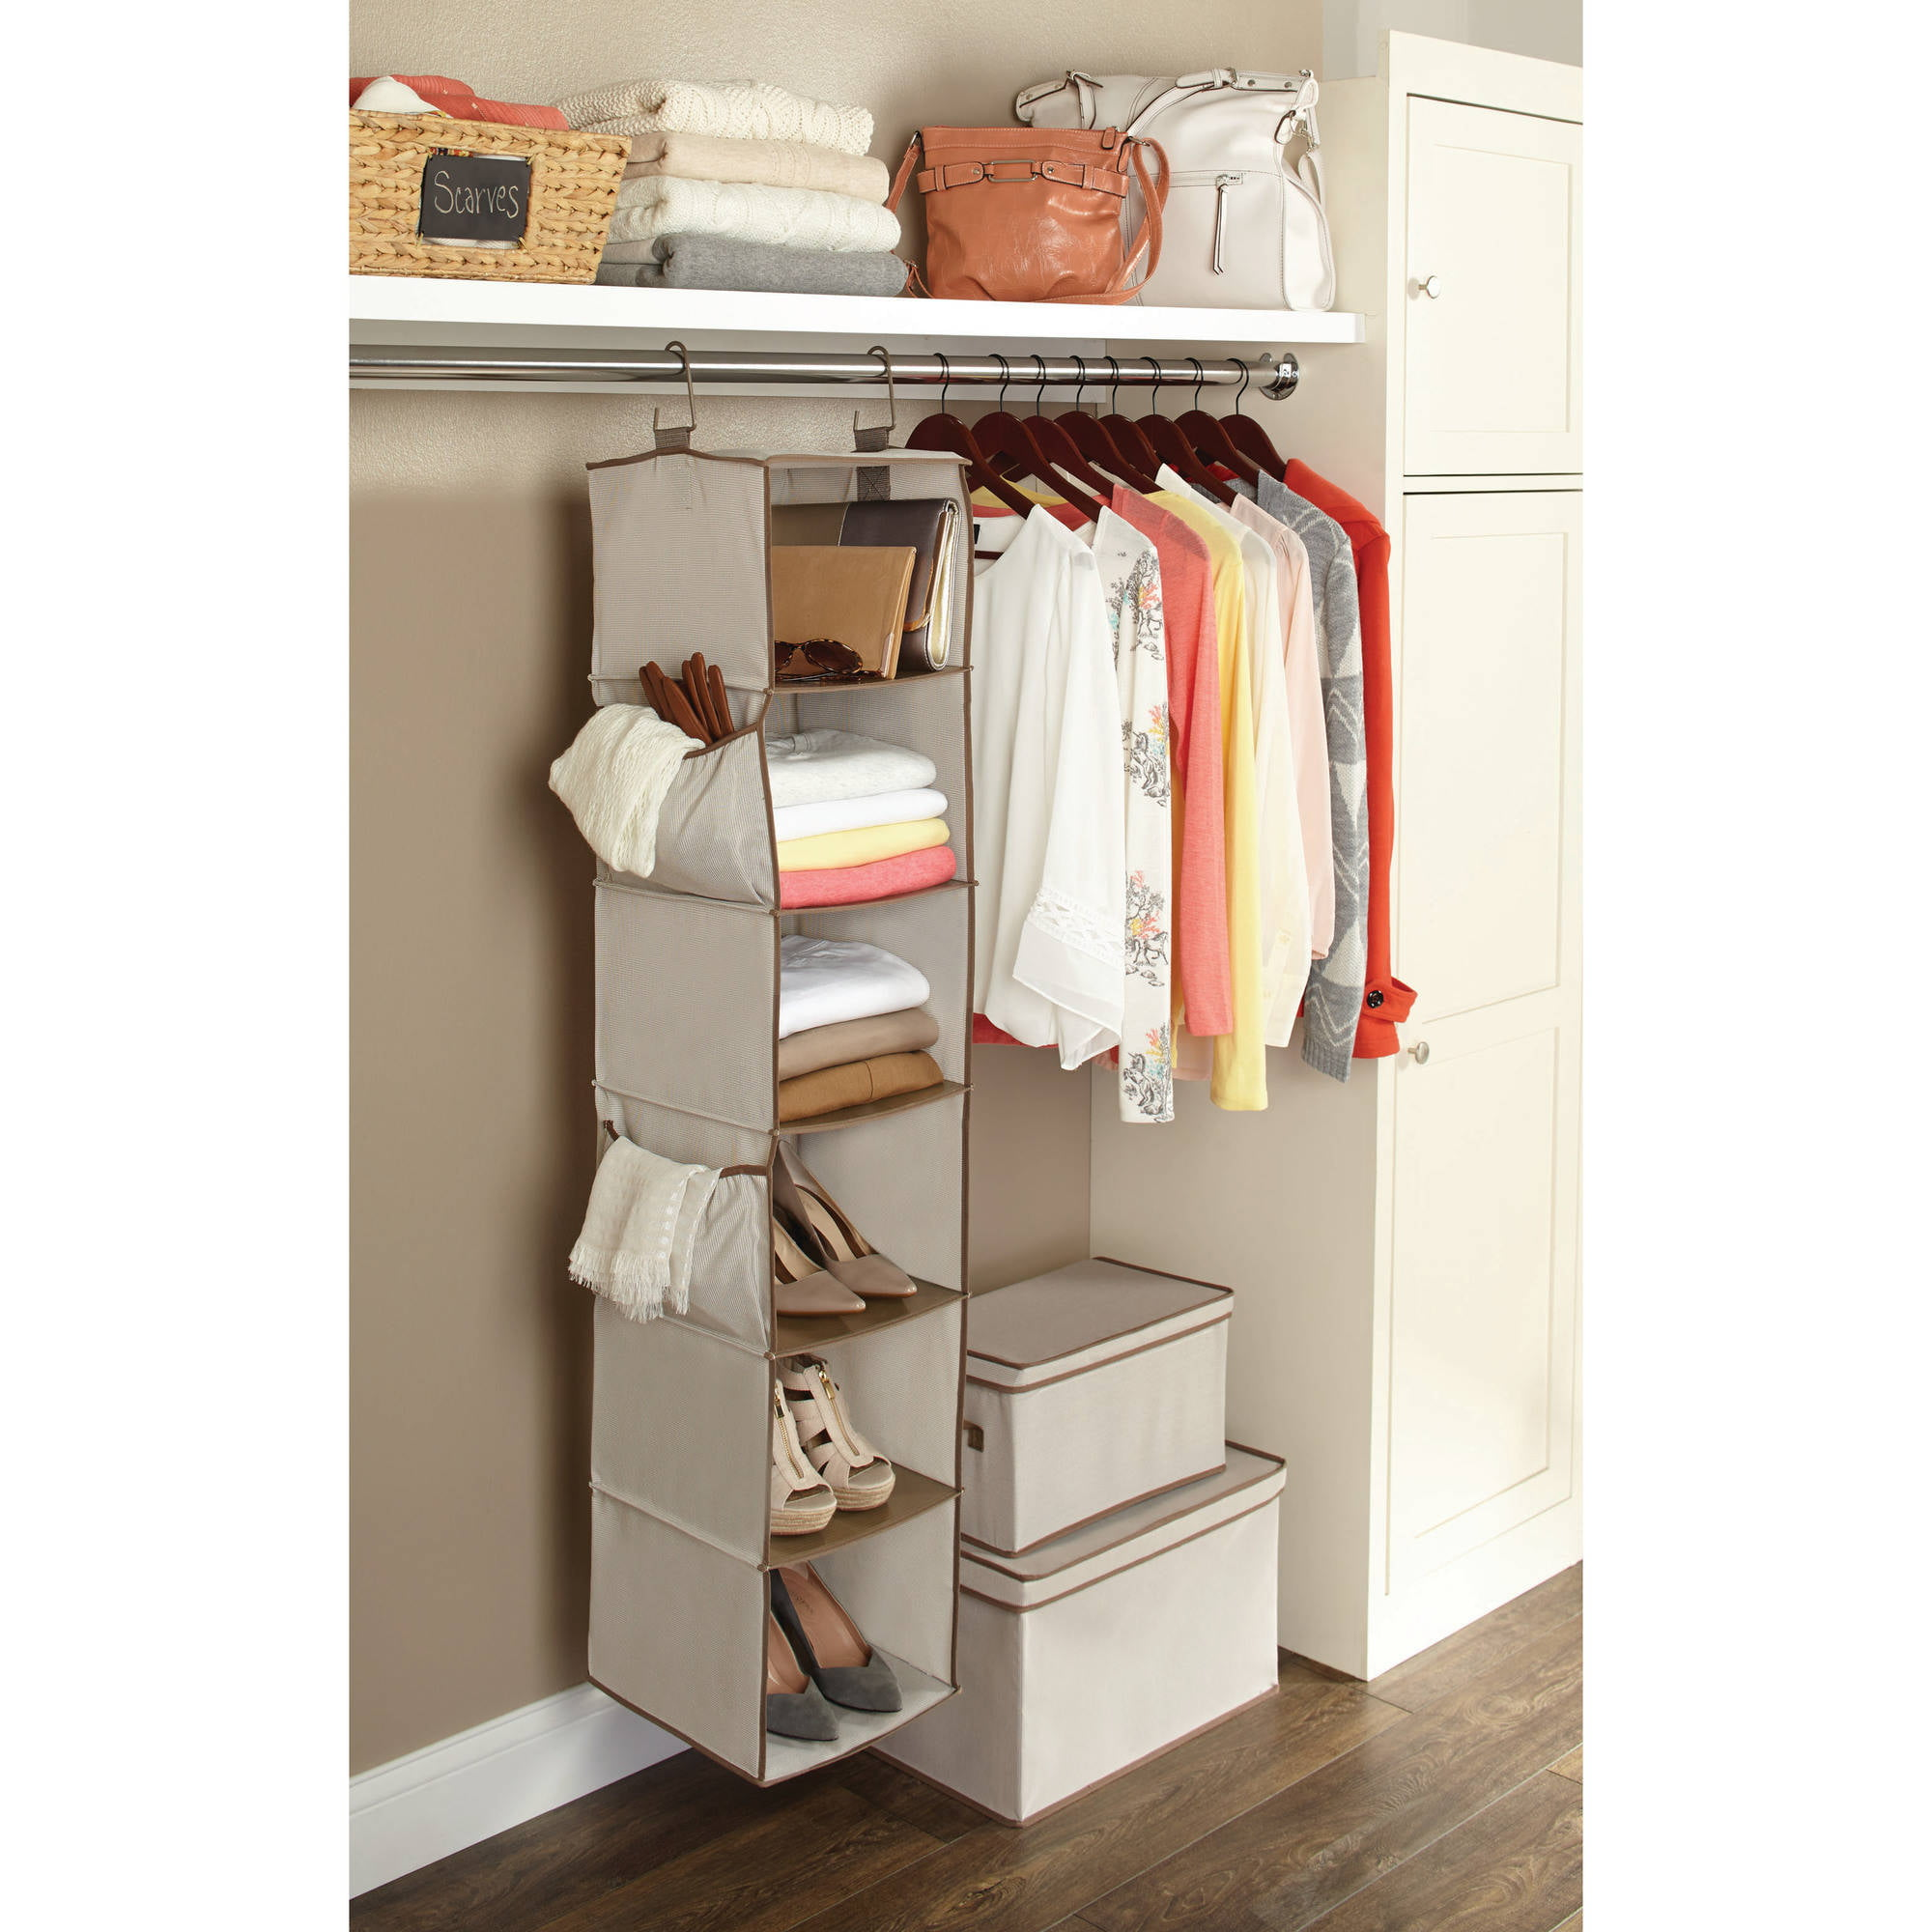 Better Homes and Gardens 6 Shelf Hanging Closet Organizer Walmartcom